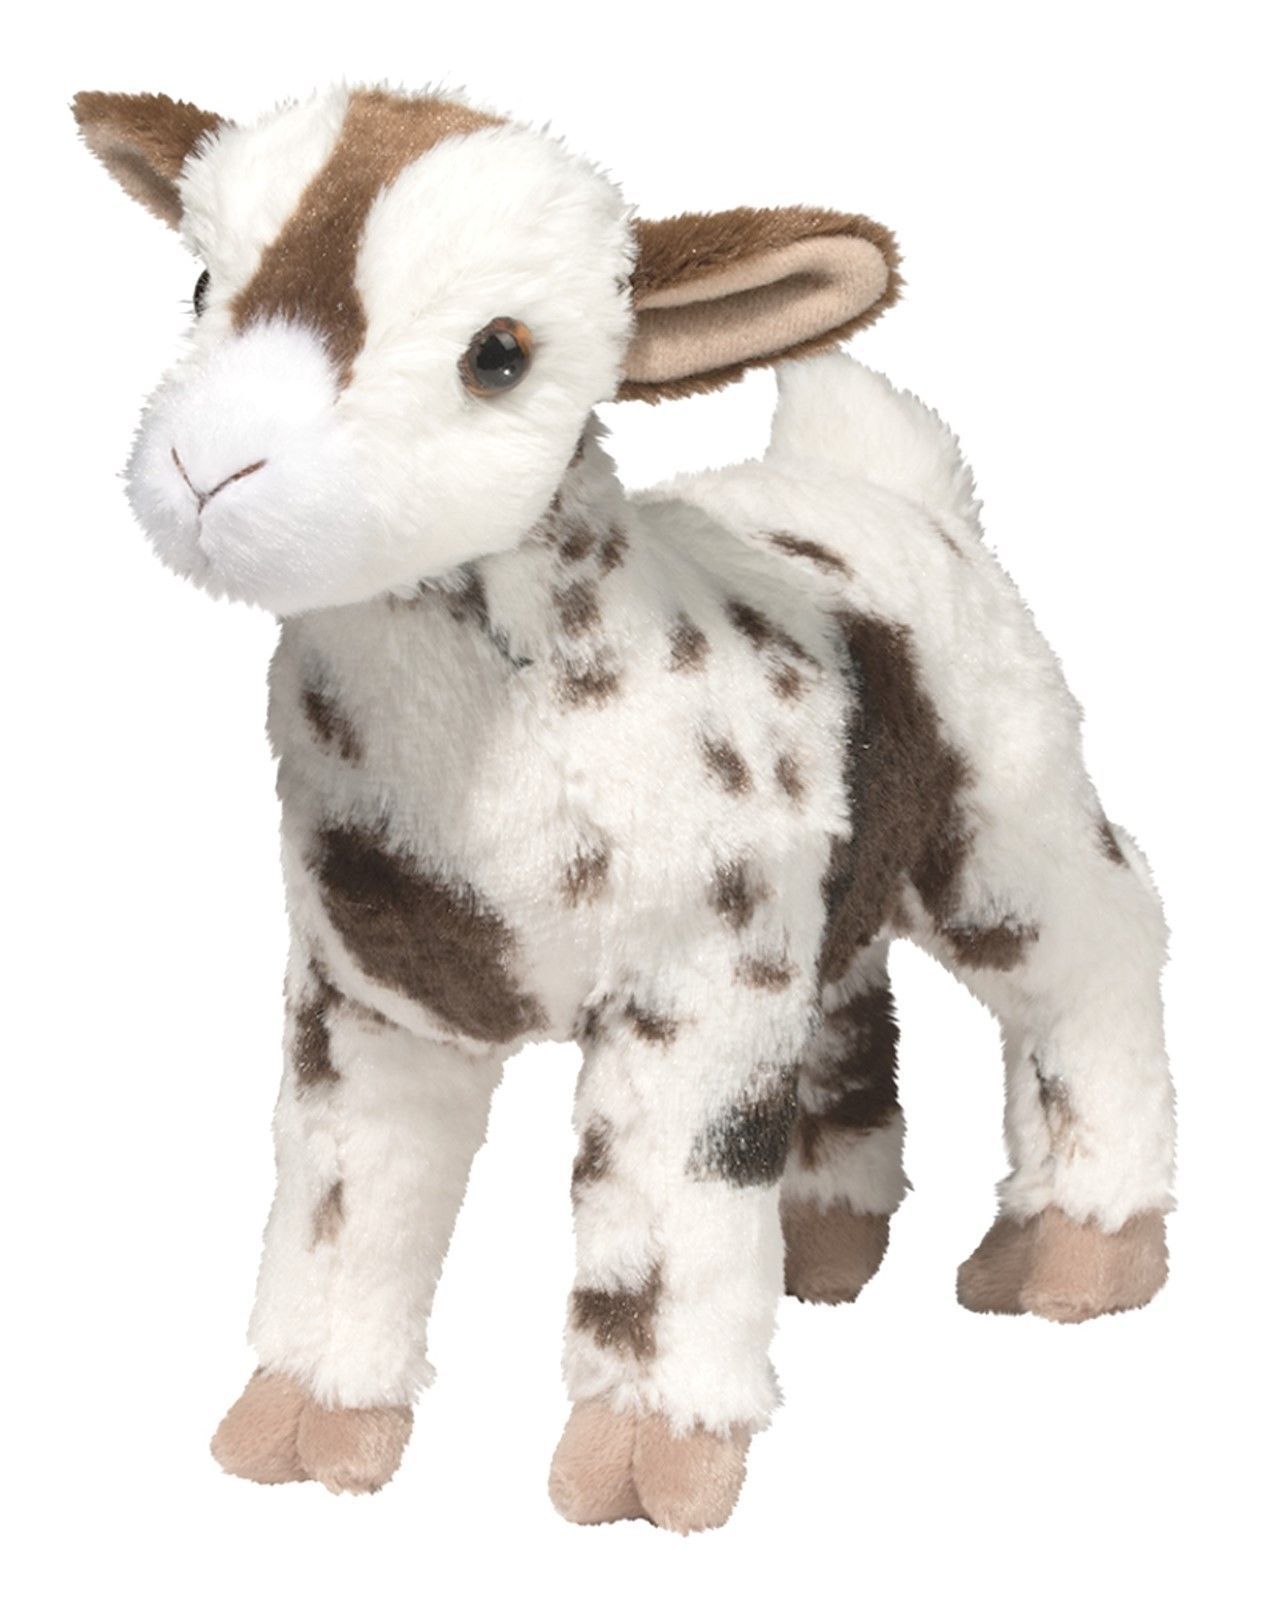 Douglas Gerti Goat 9 Plush Stuffed Farm Animal Gertie Goat Cuddle